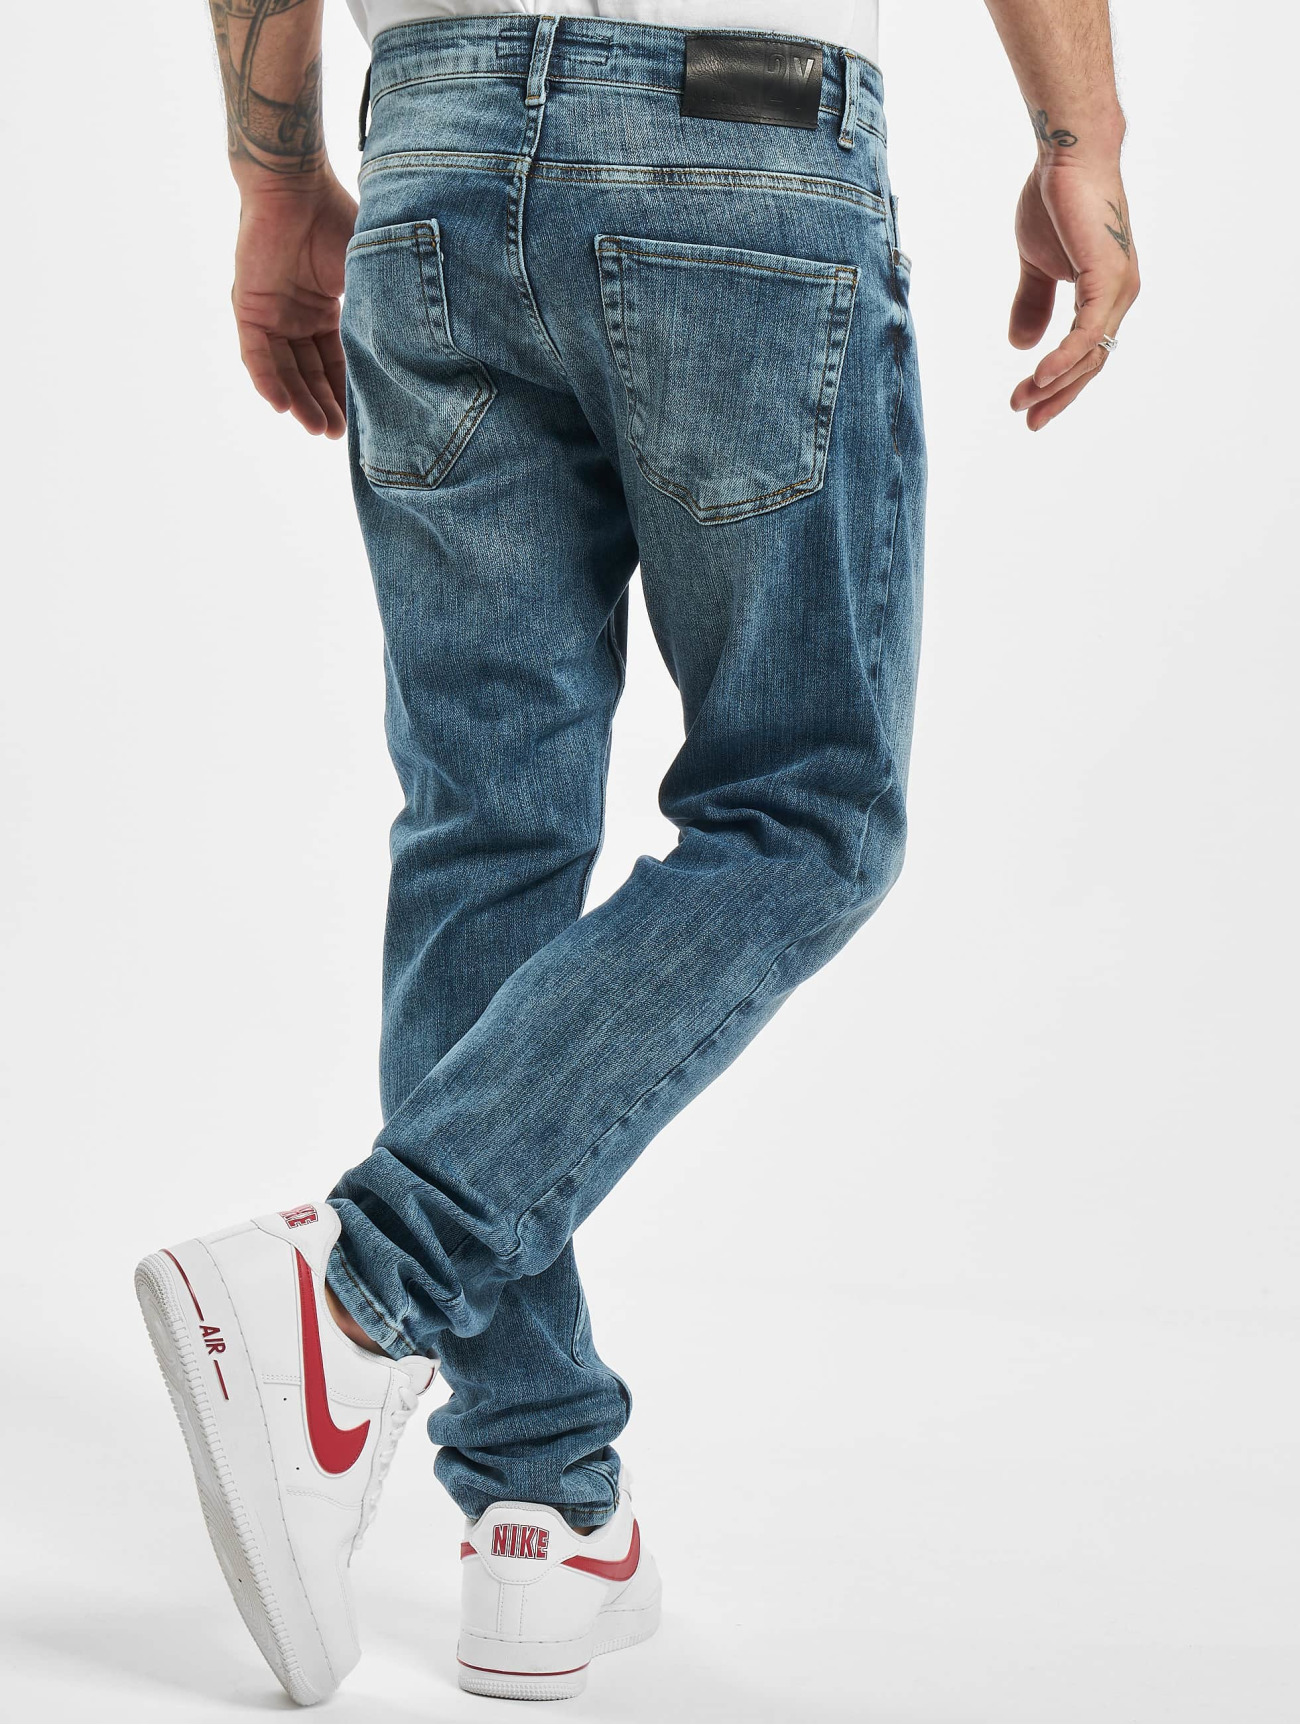 2Y Jeans / Slim Fit Jeans Mariano  i blå 765237 Män Jeans